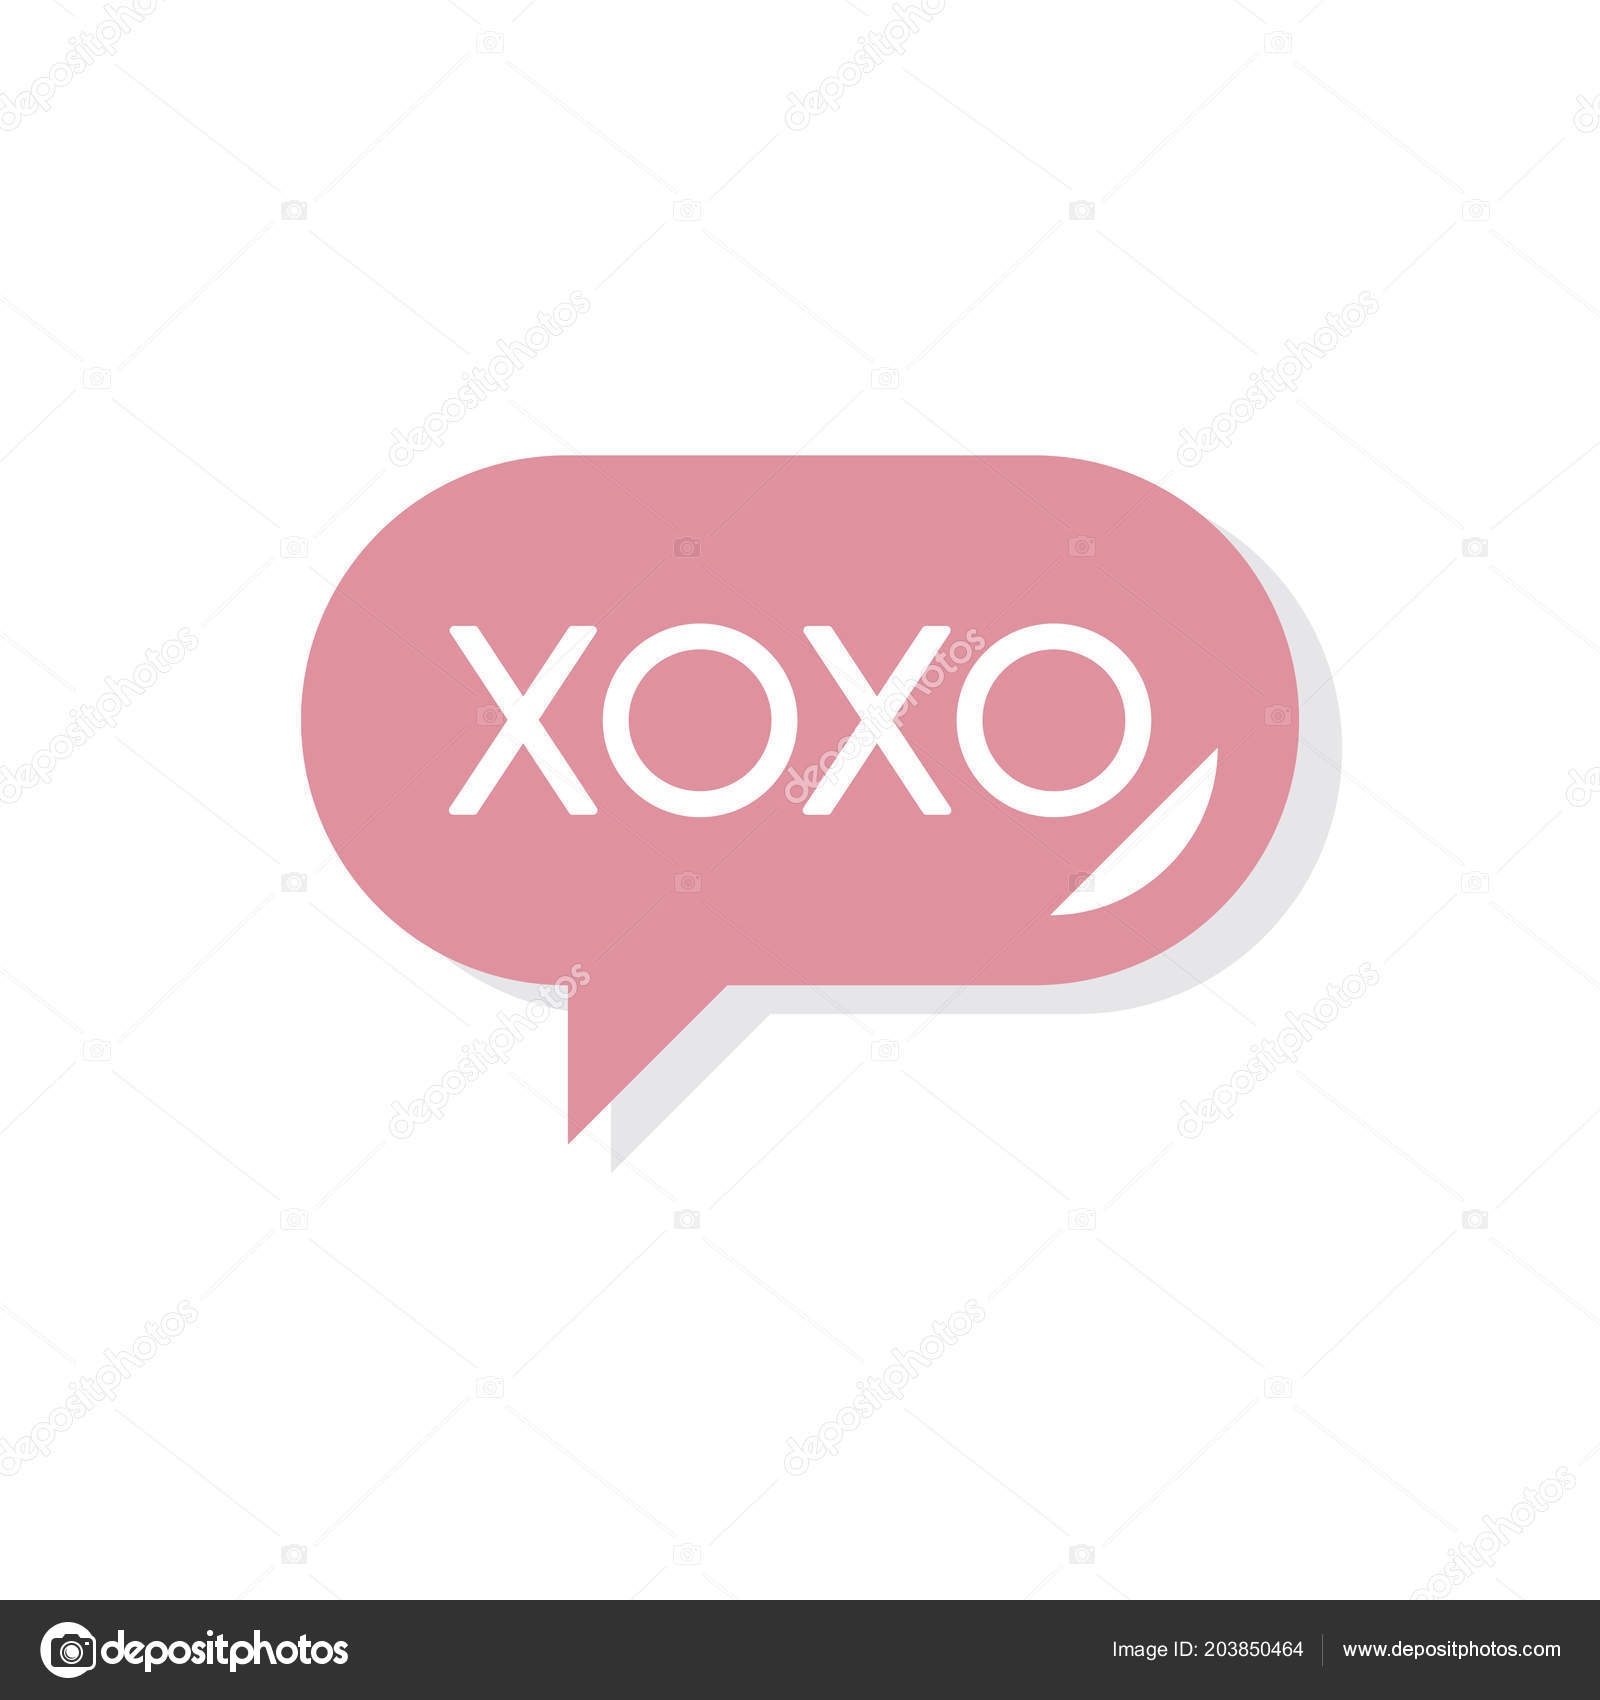 Xoxo Message Valentines Day Icon Stock Photo C Rawpixel 203850464